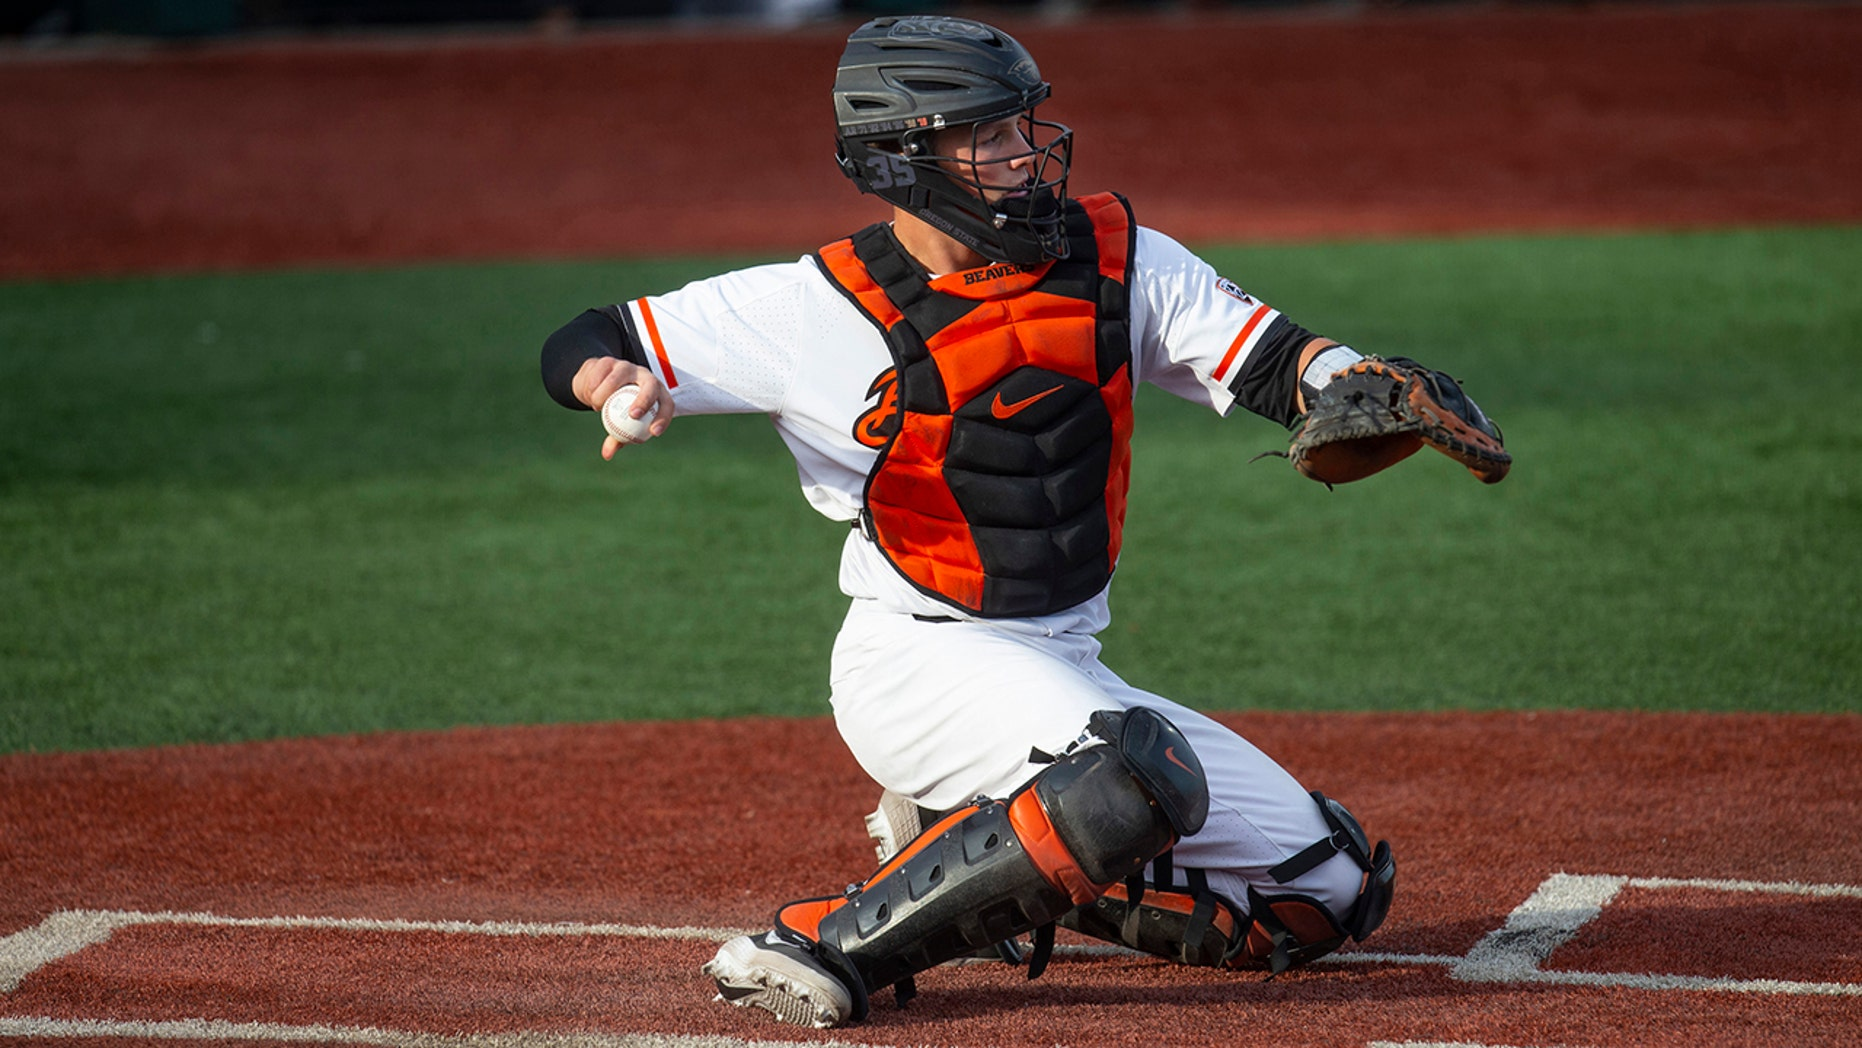 The Baltimore Orioles lead off the Major League Baseball Draft for the first time in 30 years and Oregon State catcher Adley Rutschman is a heavy favorite to be selected No. 1 on Monday night, June 3, 2019. (AP Photo/Chris Pietsch, File)